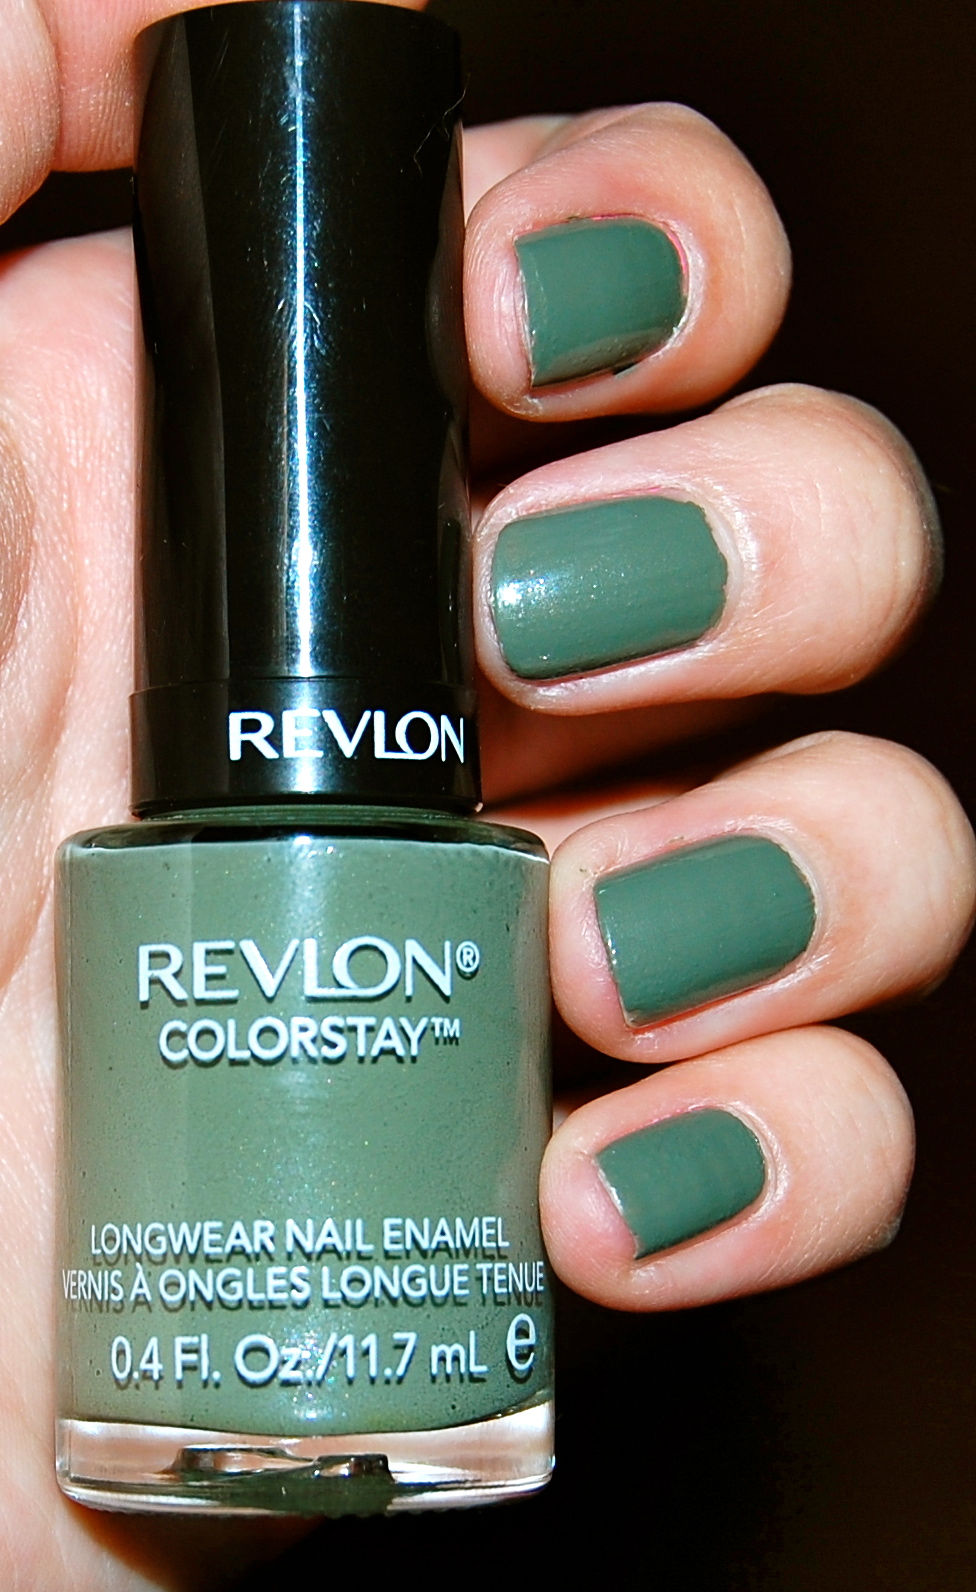 Buzzed About Beauty: Nail of the Day: Revlon Colorstay in Spanish Moss!